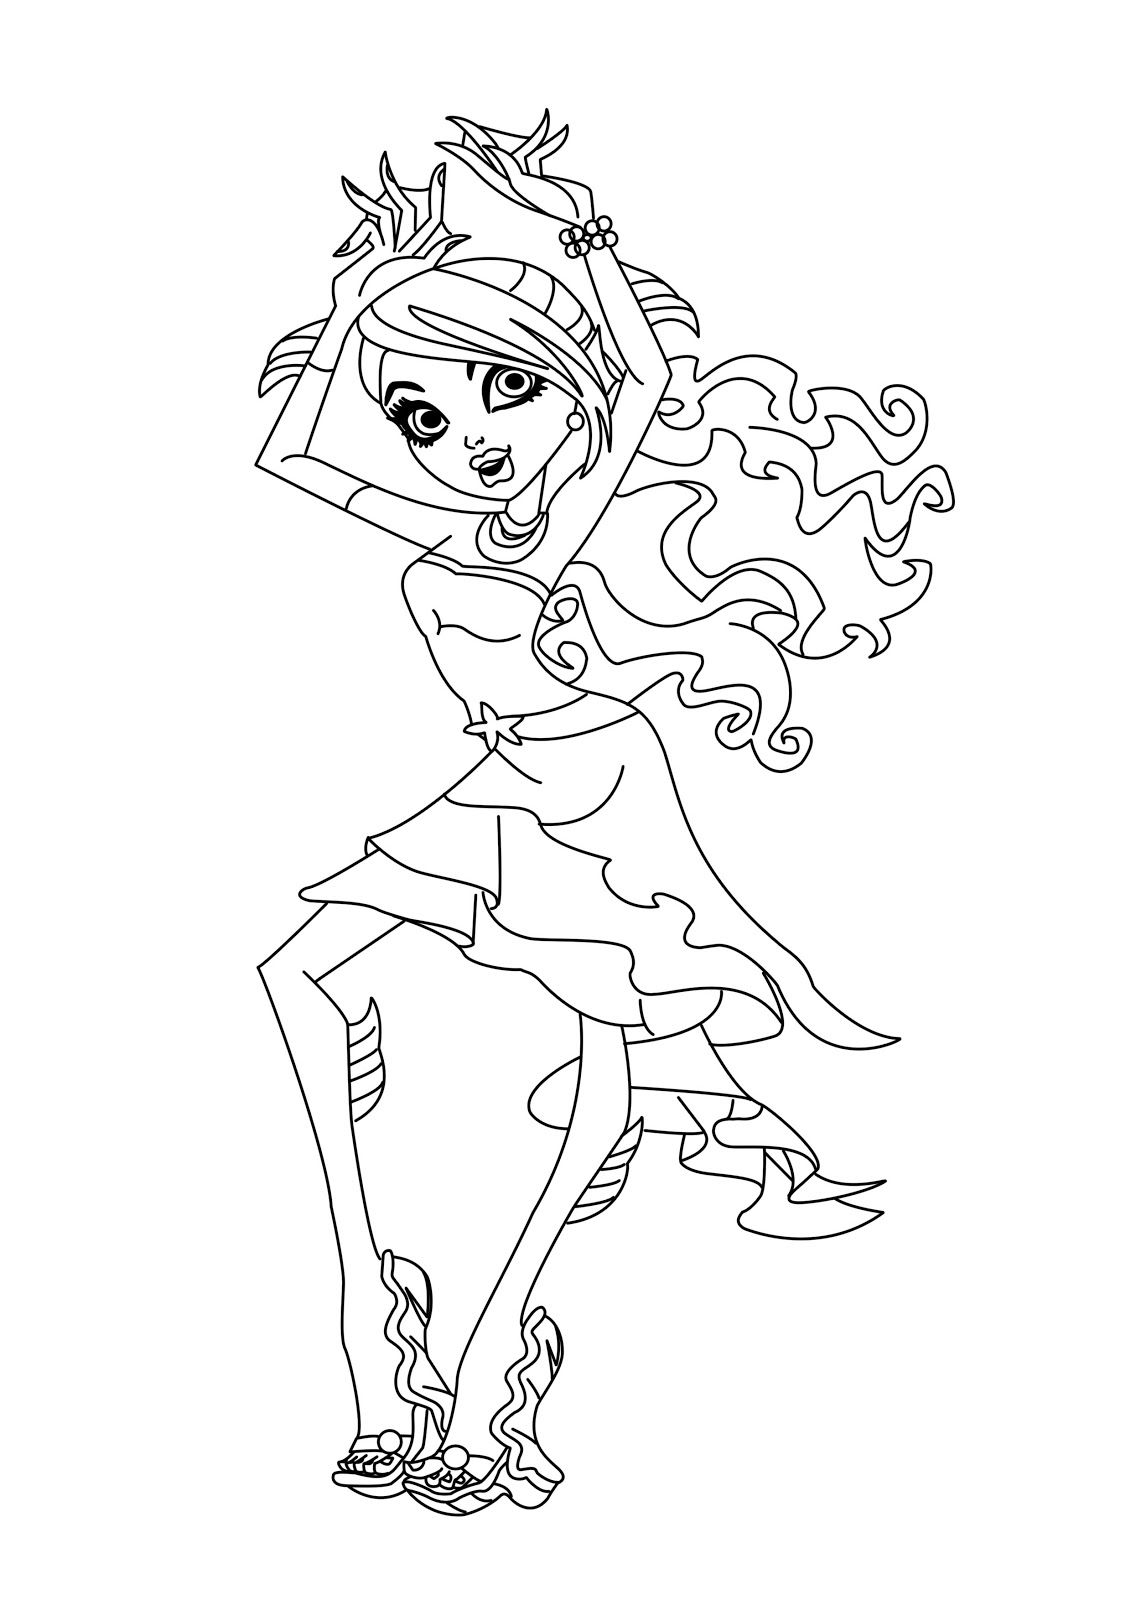 free printable monster high coloring pages for kids coloring